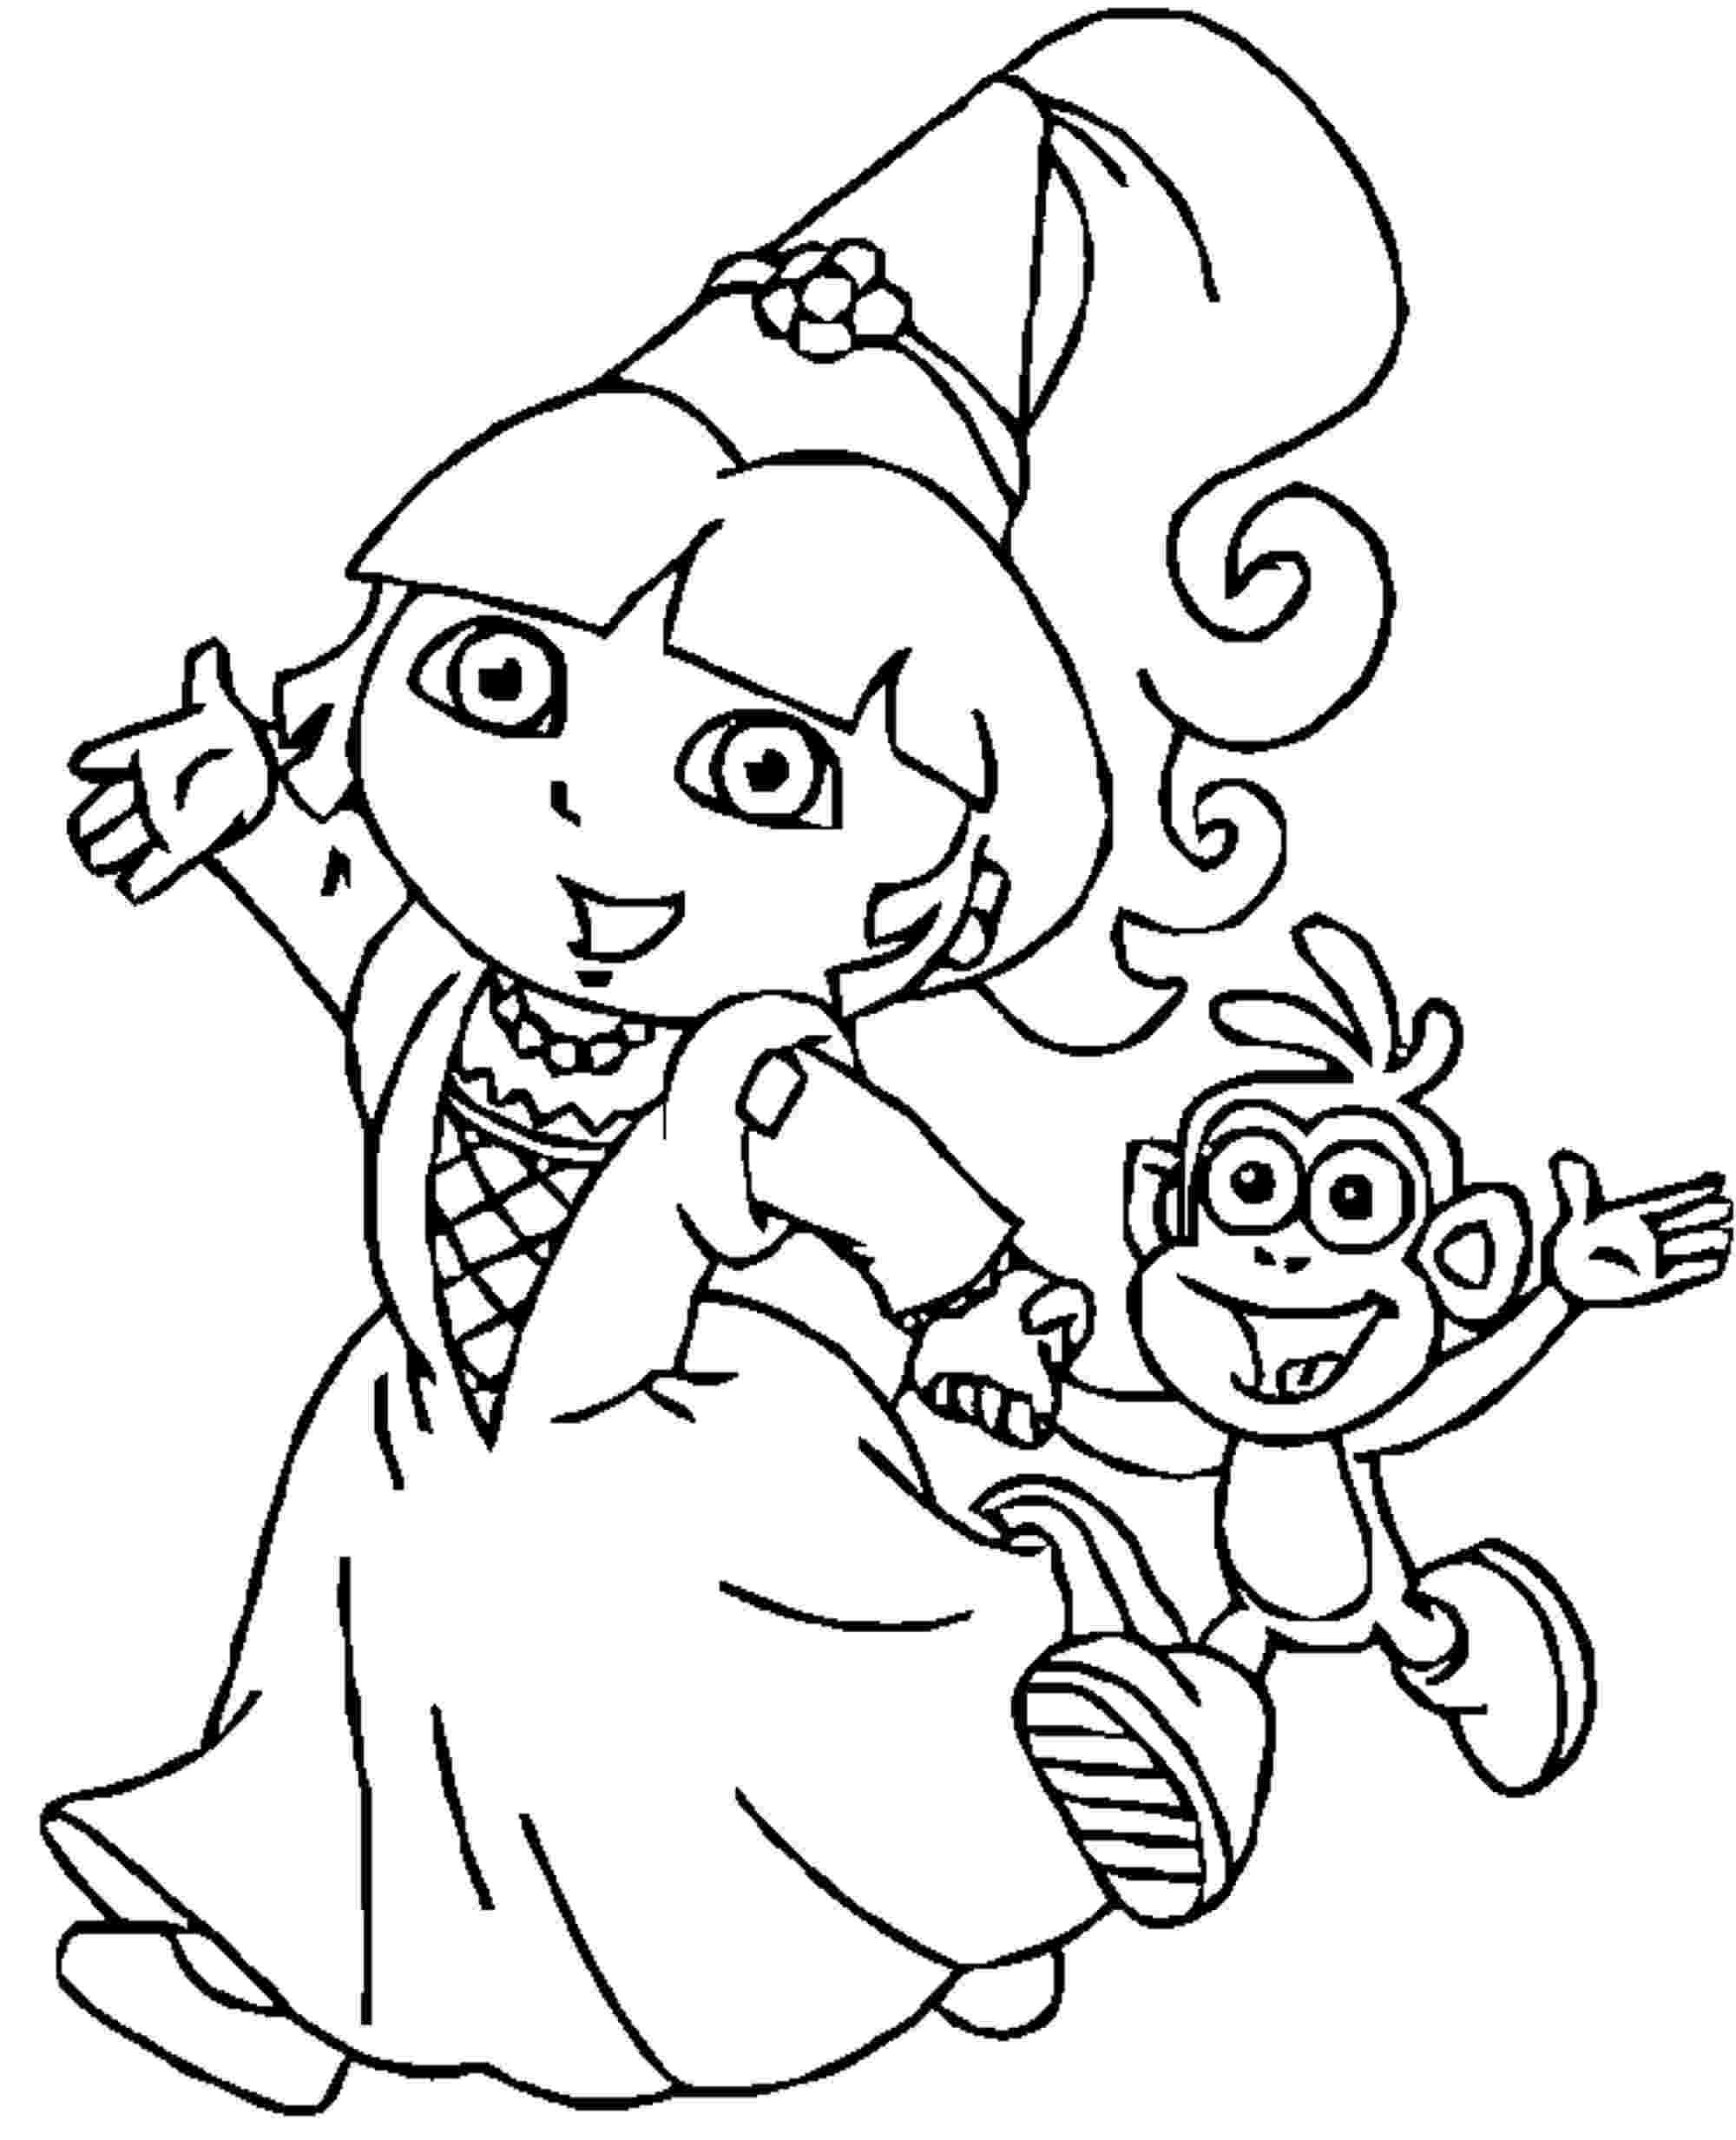 colouring pages dora dora christmas coloring pages 12 printable coloring sheets colouring pages dora